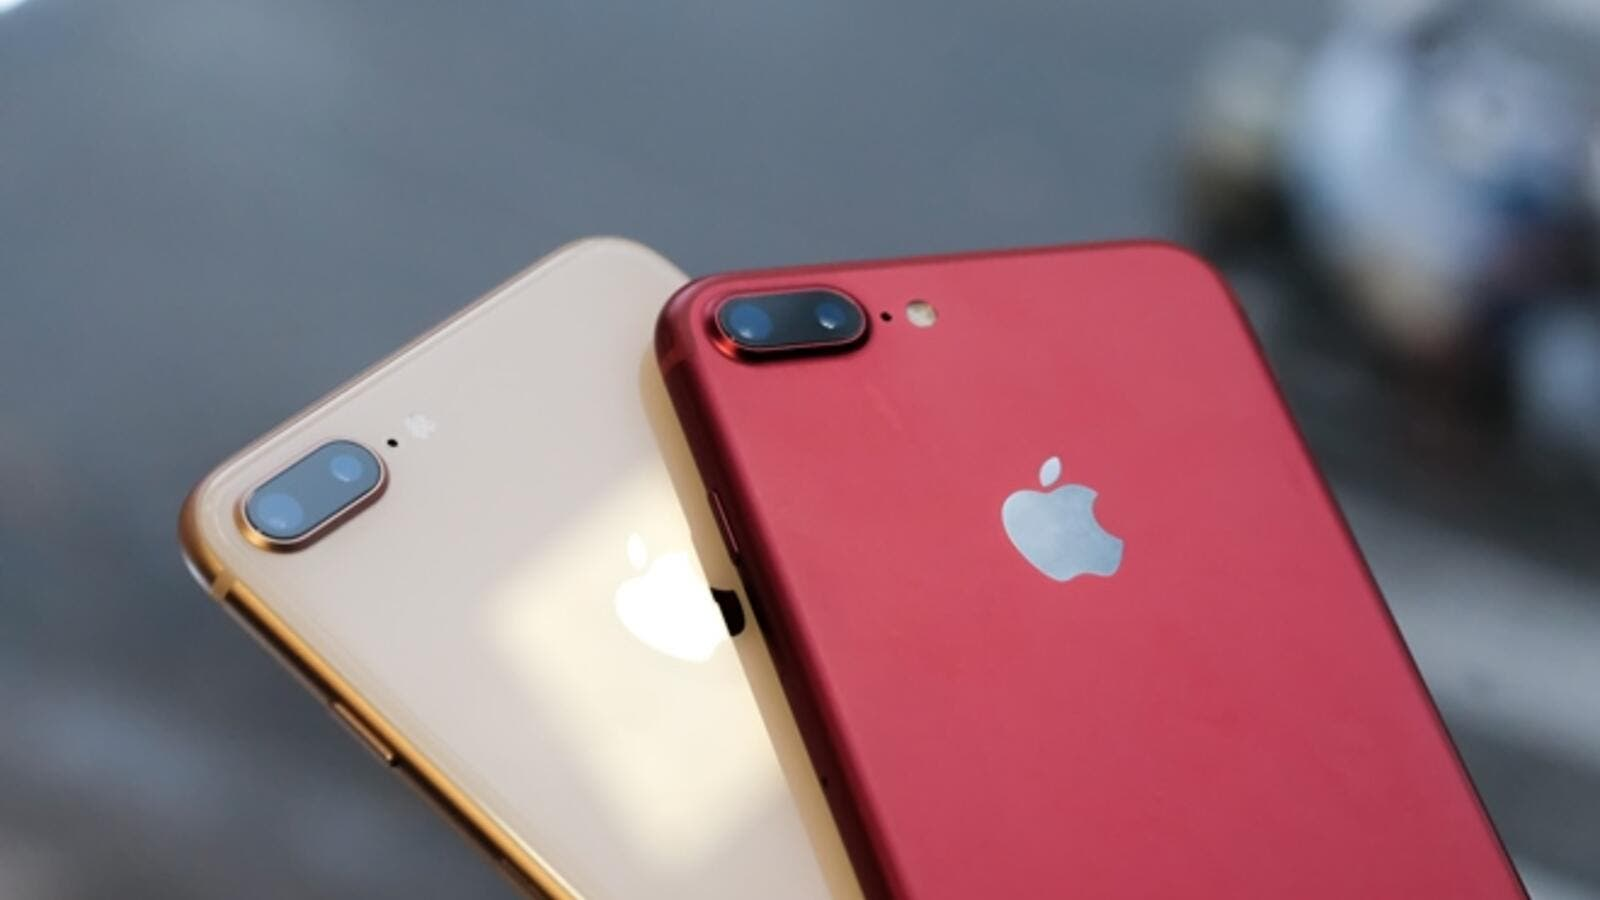 Apple said with iOS 12, camera launches up to 70 per cent faster, the keyboard appears up to 50 per cent faster and typing is more responsive. (Shutterstock)